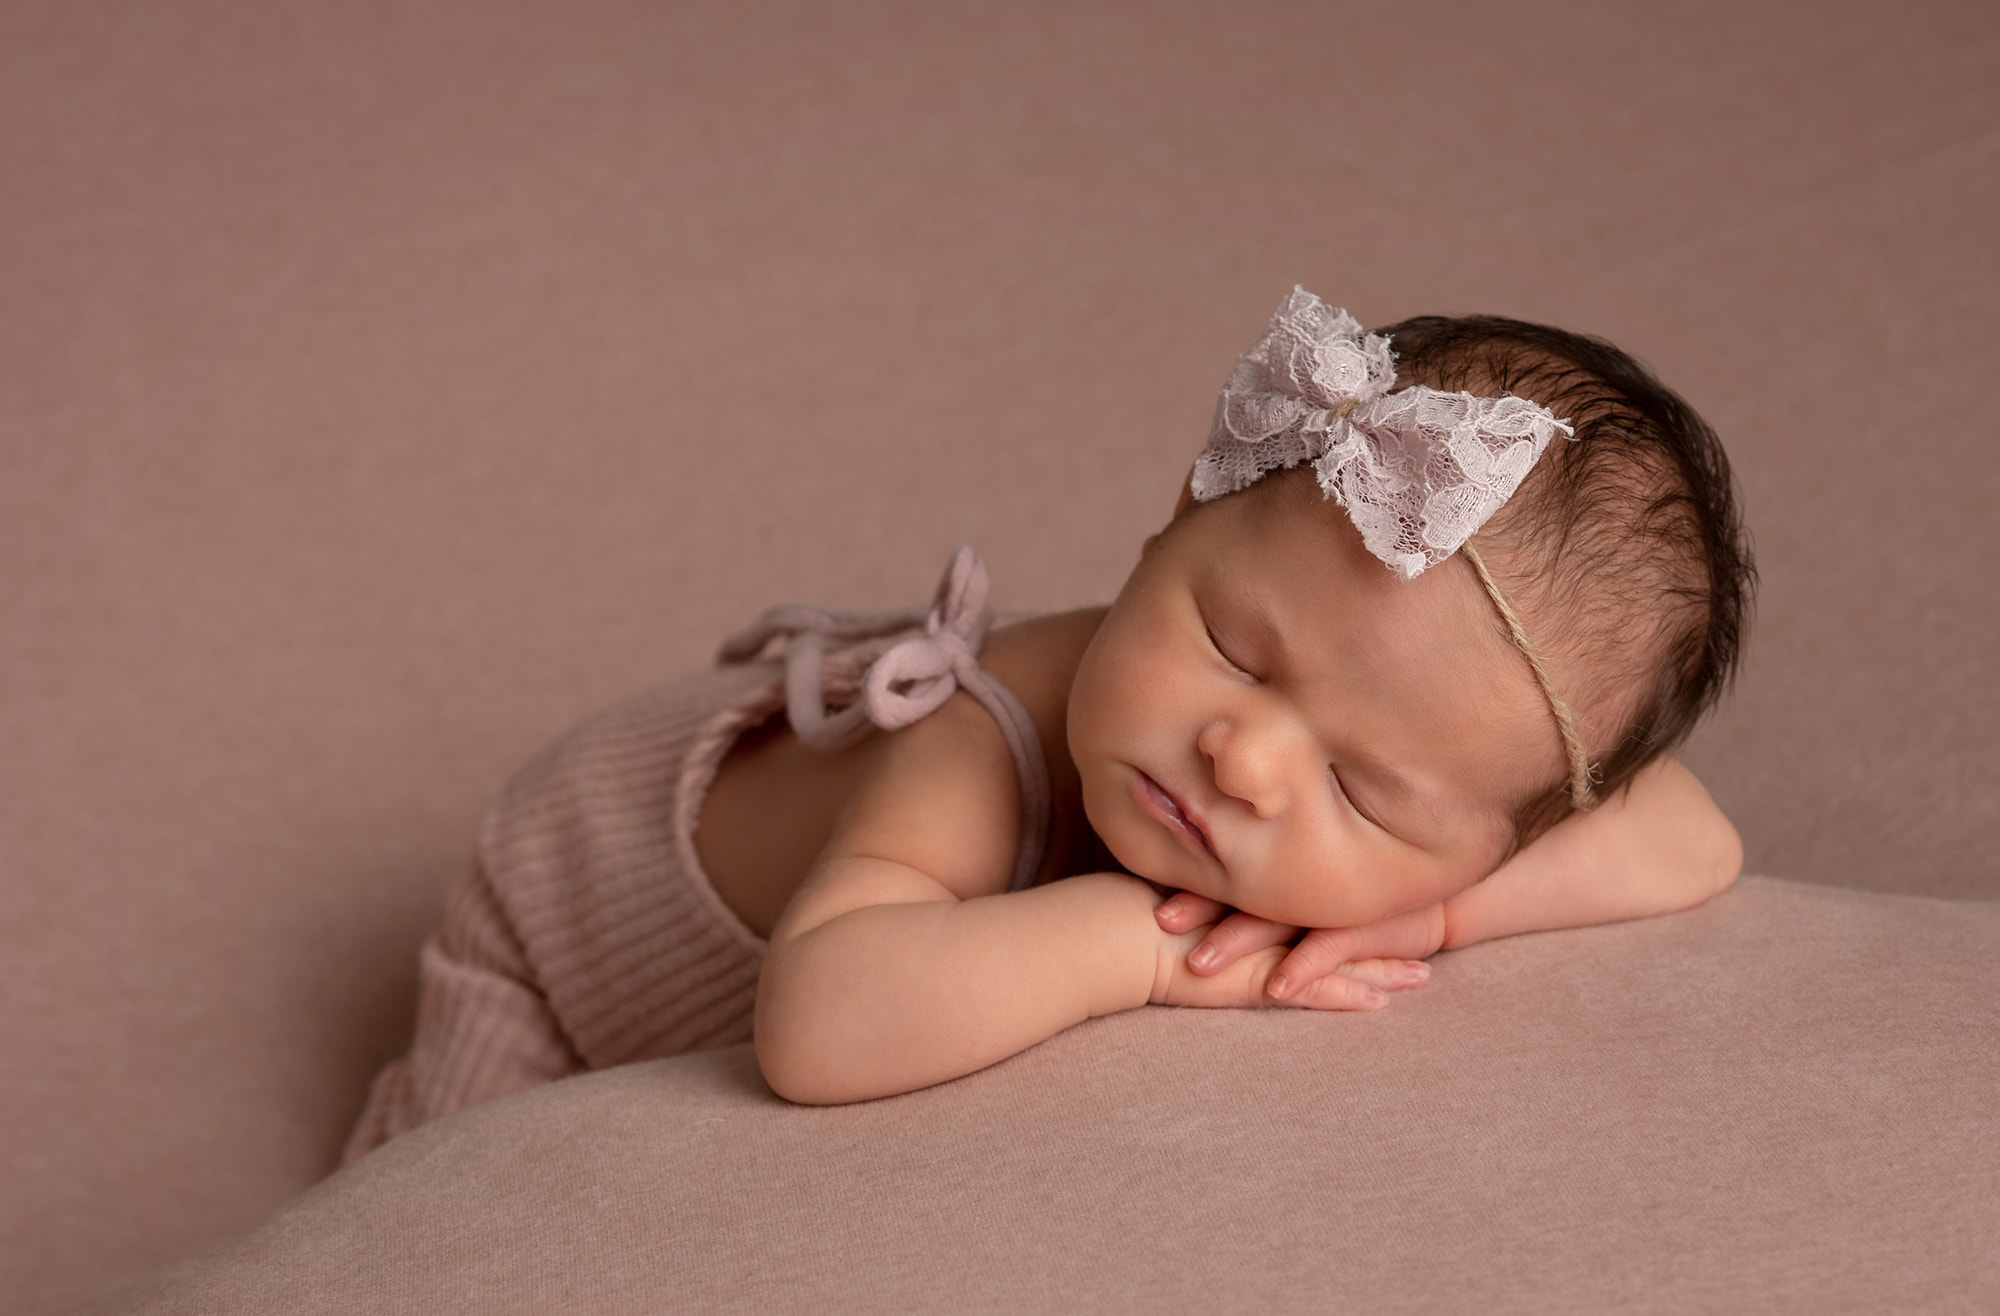 newborn photographer west sussex brightography baby girl asleep on pink blanket with romper and bow headband